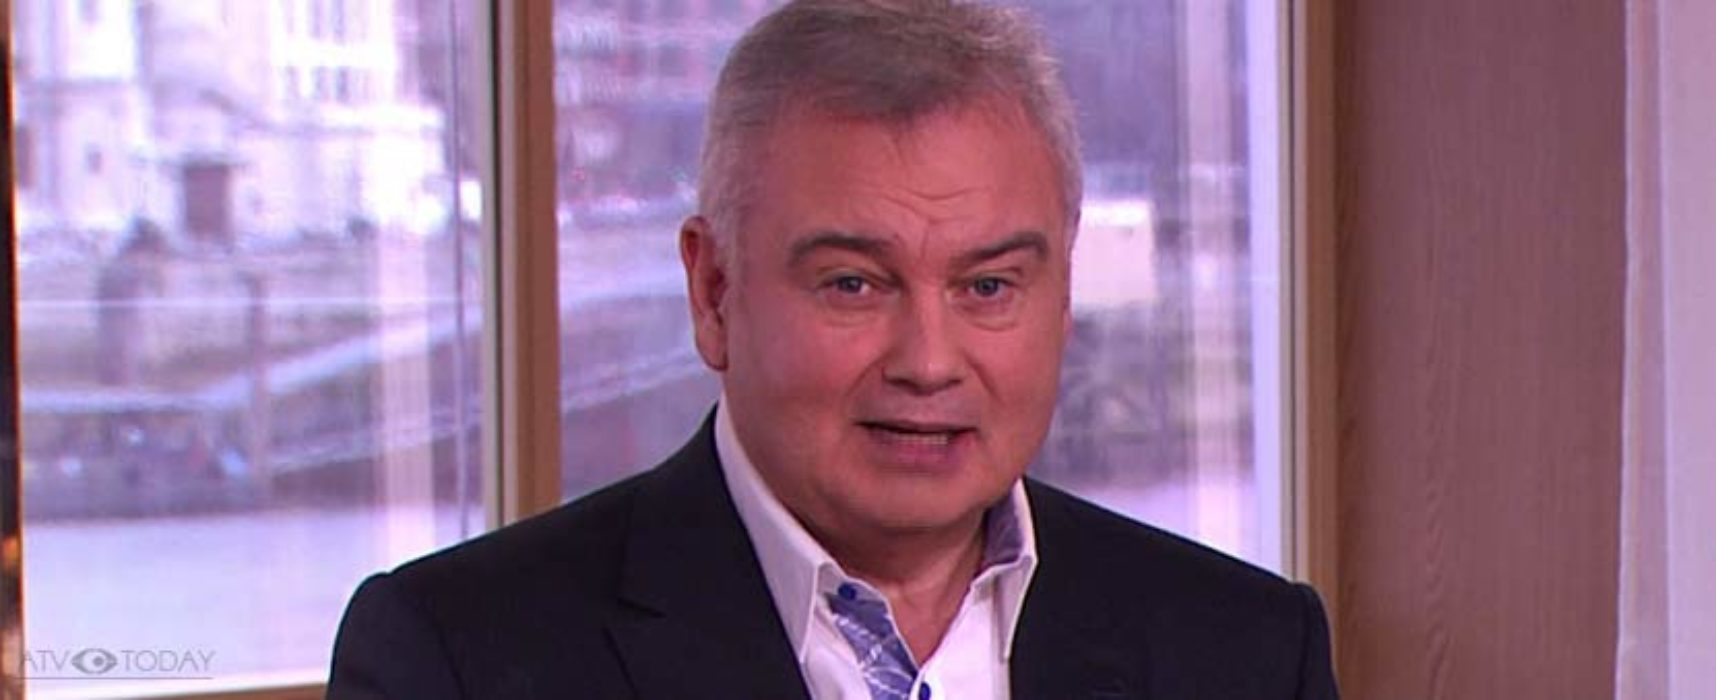 More details on Eamonn Holmes' new talkRADIO show revealed